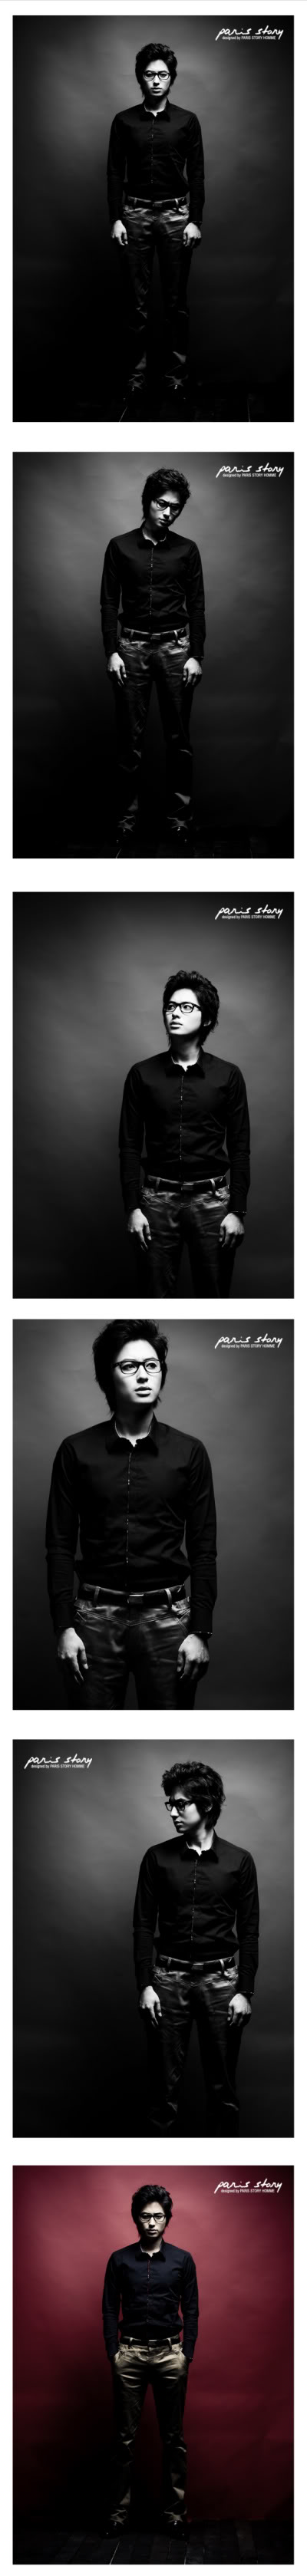 Lee Jee Hoon - Paris Story Hommes Collection I PH85-S-9